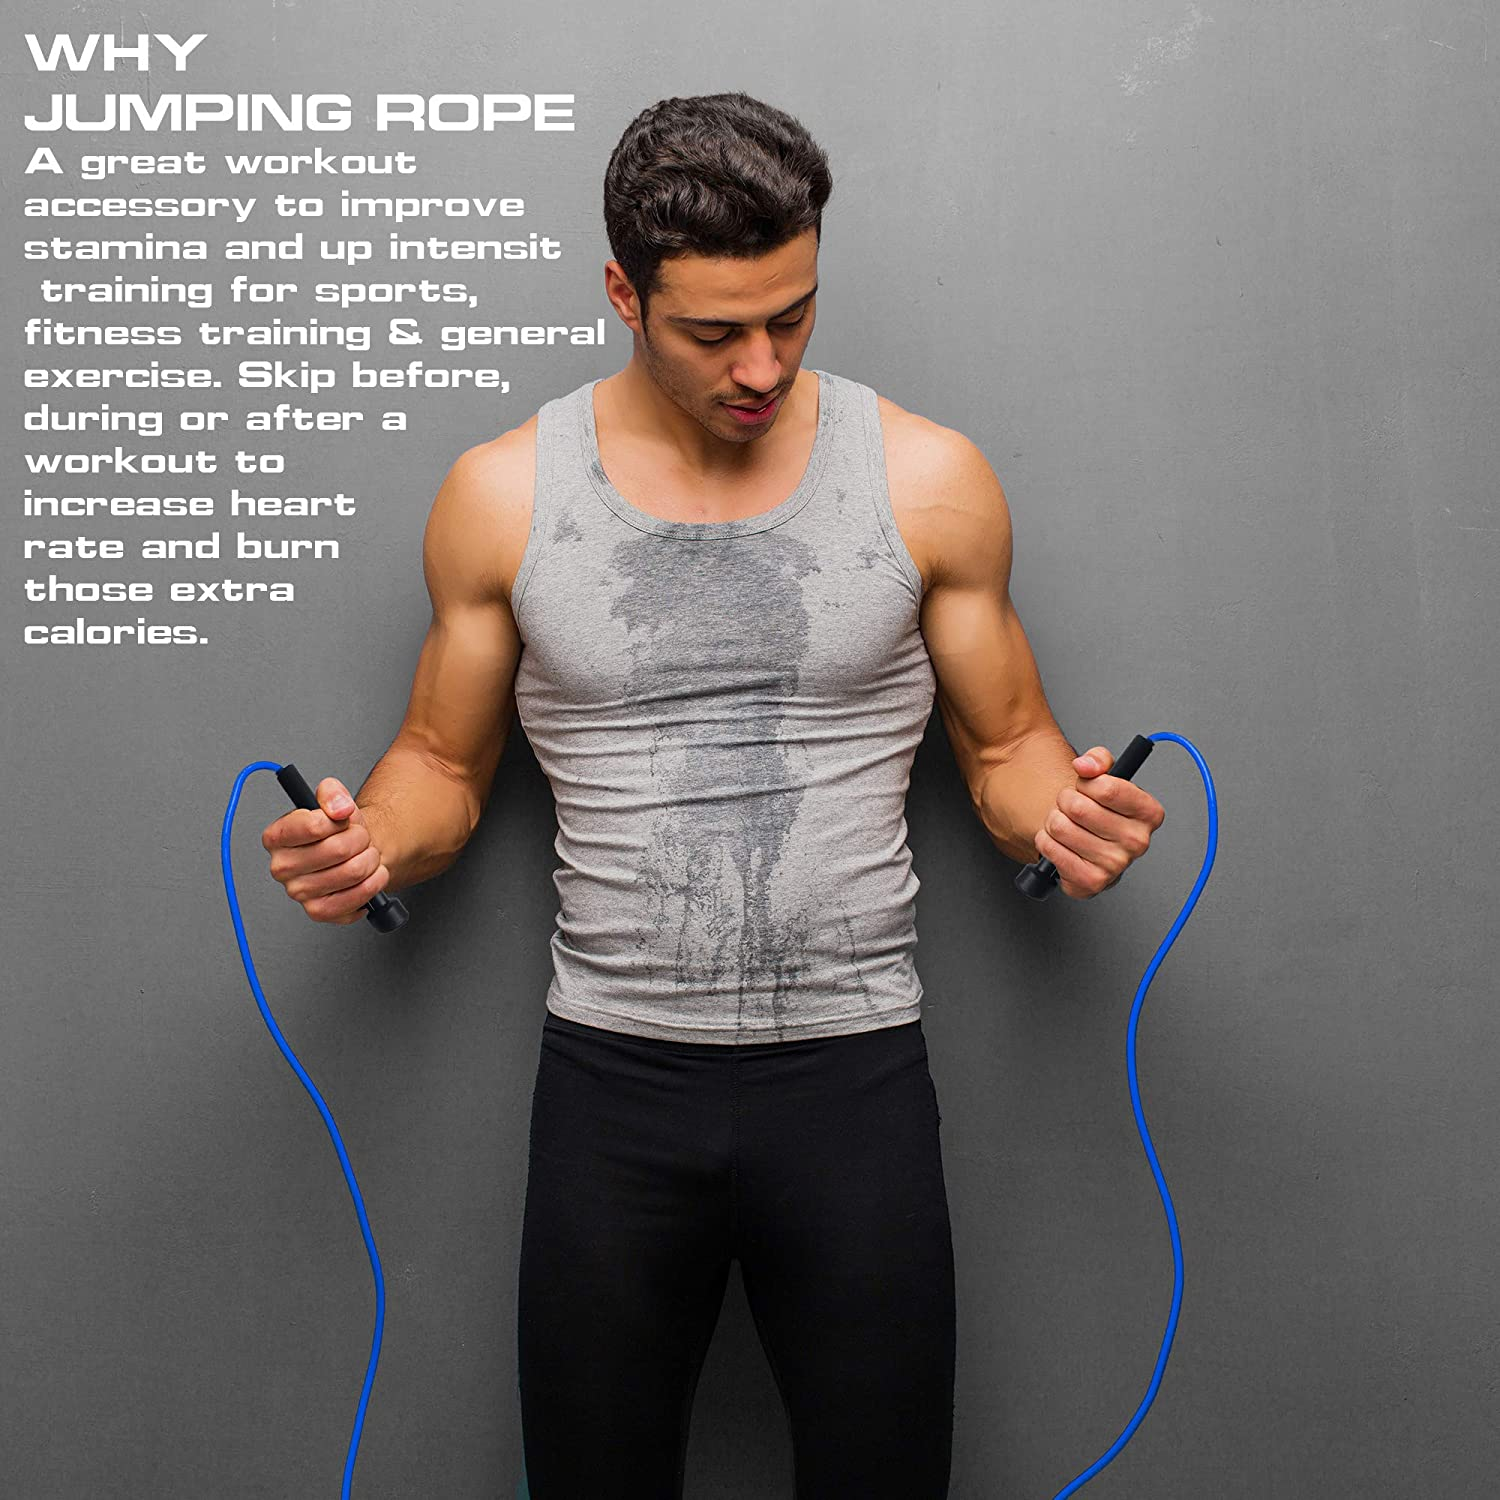 MMA and so on. Boxing speed jumping rope with non slip handle APPSOLS Skipping rope Tangle-free Adjustable Rope and Rapid Ball Bearings for Fitness Fat Burning Exercises Crossfit